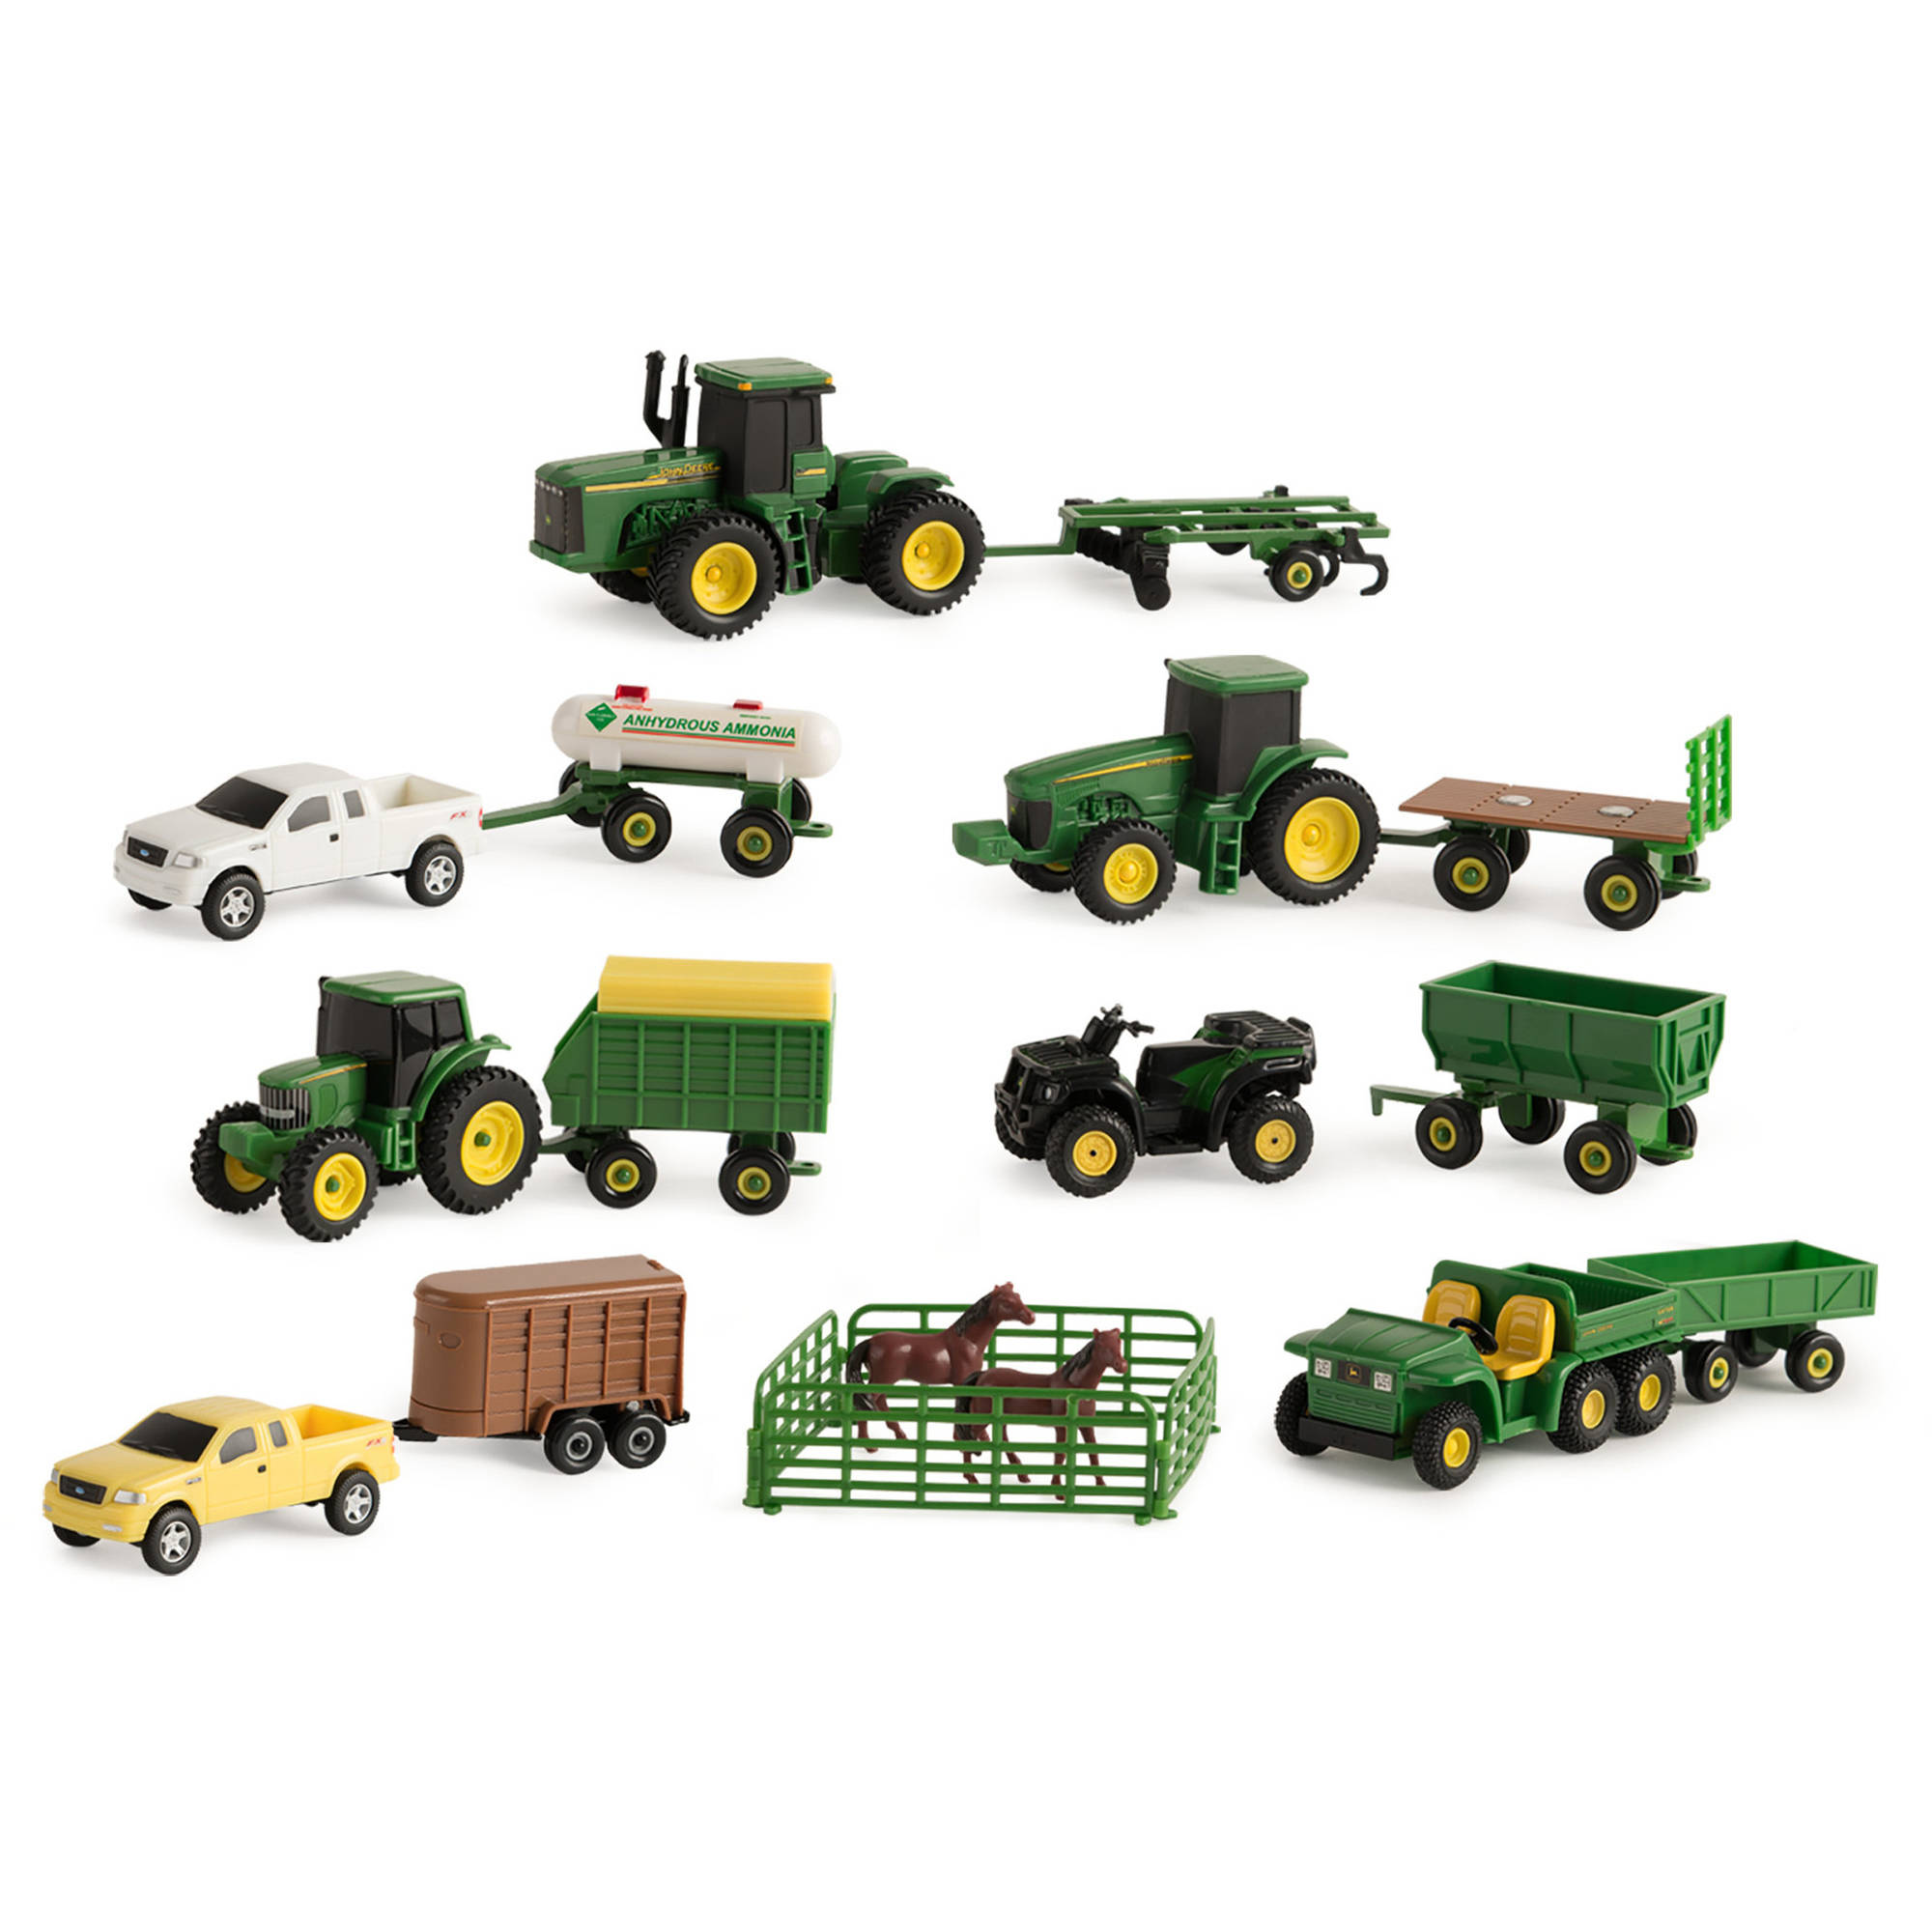 ERTL 1:64 John Deere Vehicle Value Set